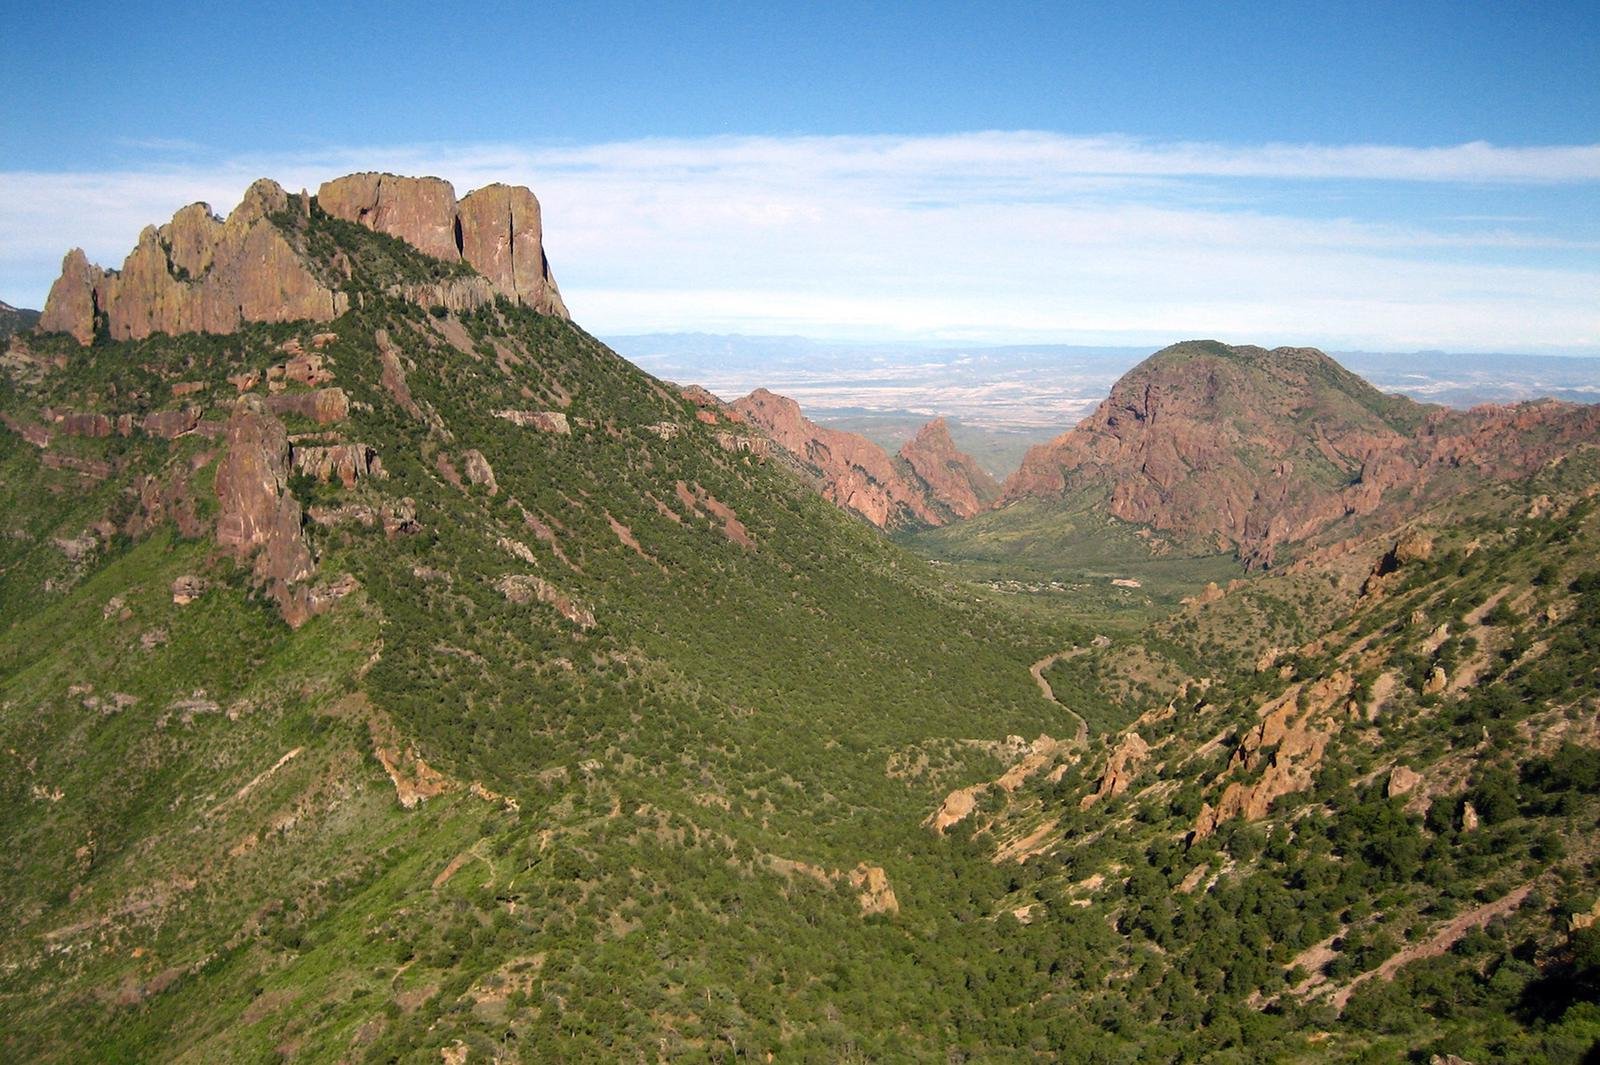 View of Chisos Basin from the Lost Mine trail. Green vegetation with red mountainsView of Chisos Basin from the Lost Mine trail